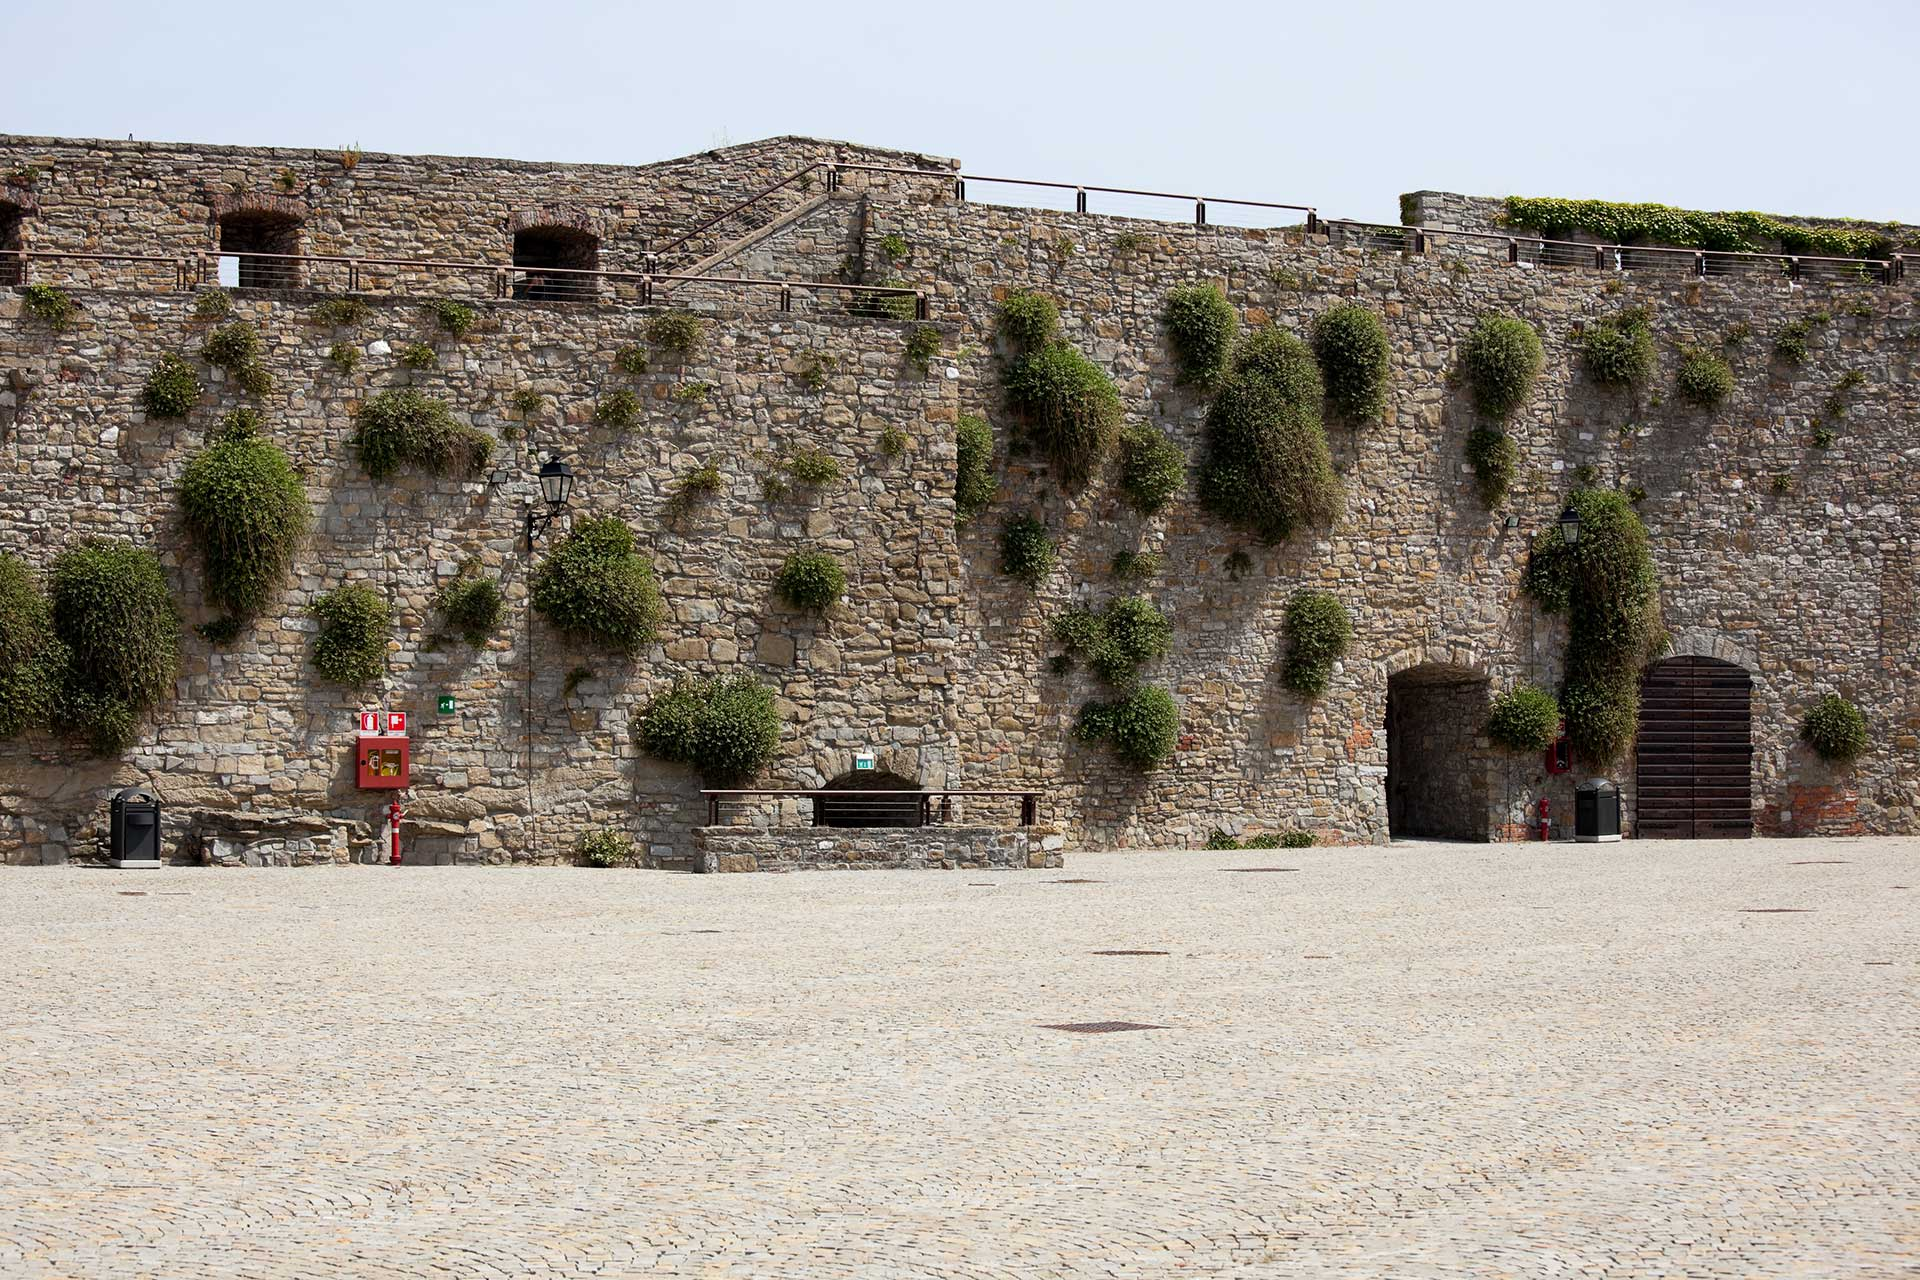 an old stone wall with green shrubs growing out of it rising up from a cobblestone courtyard